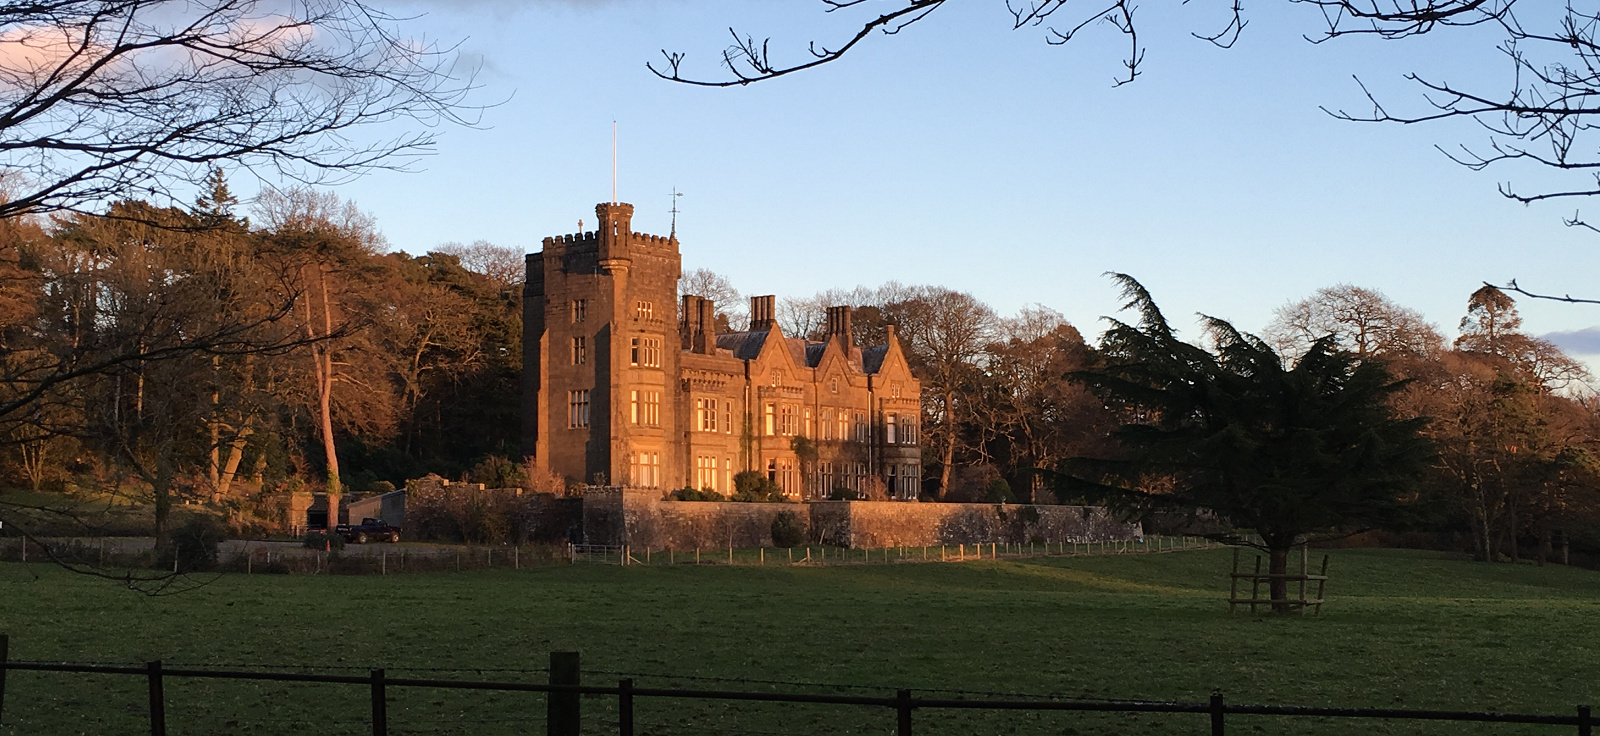 Stradey Castle, Winter sunshine